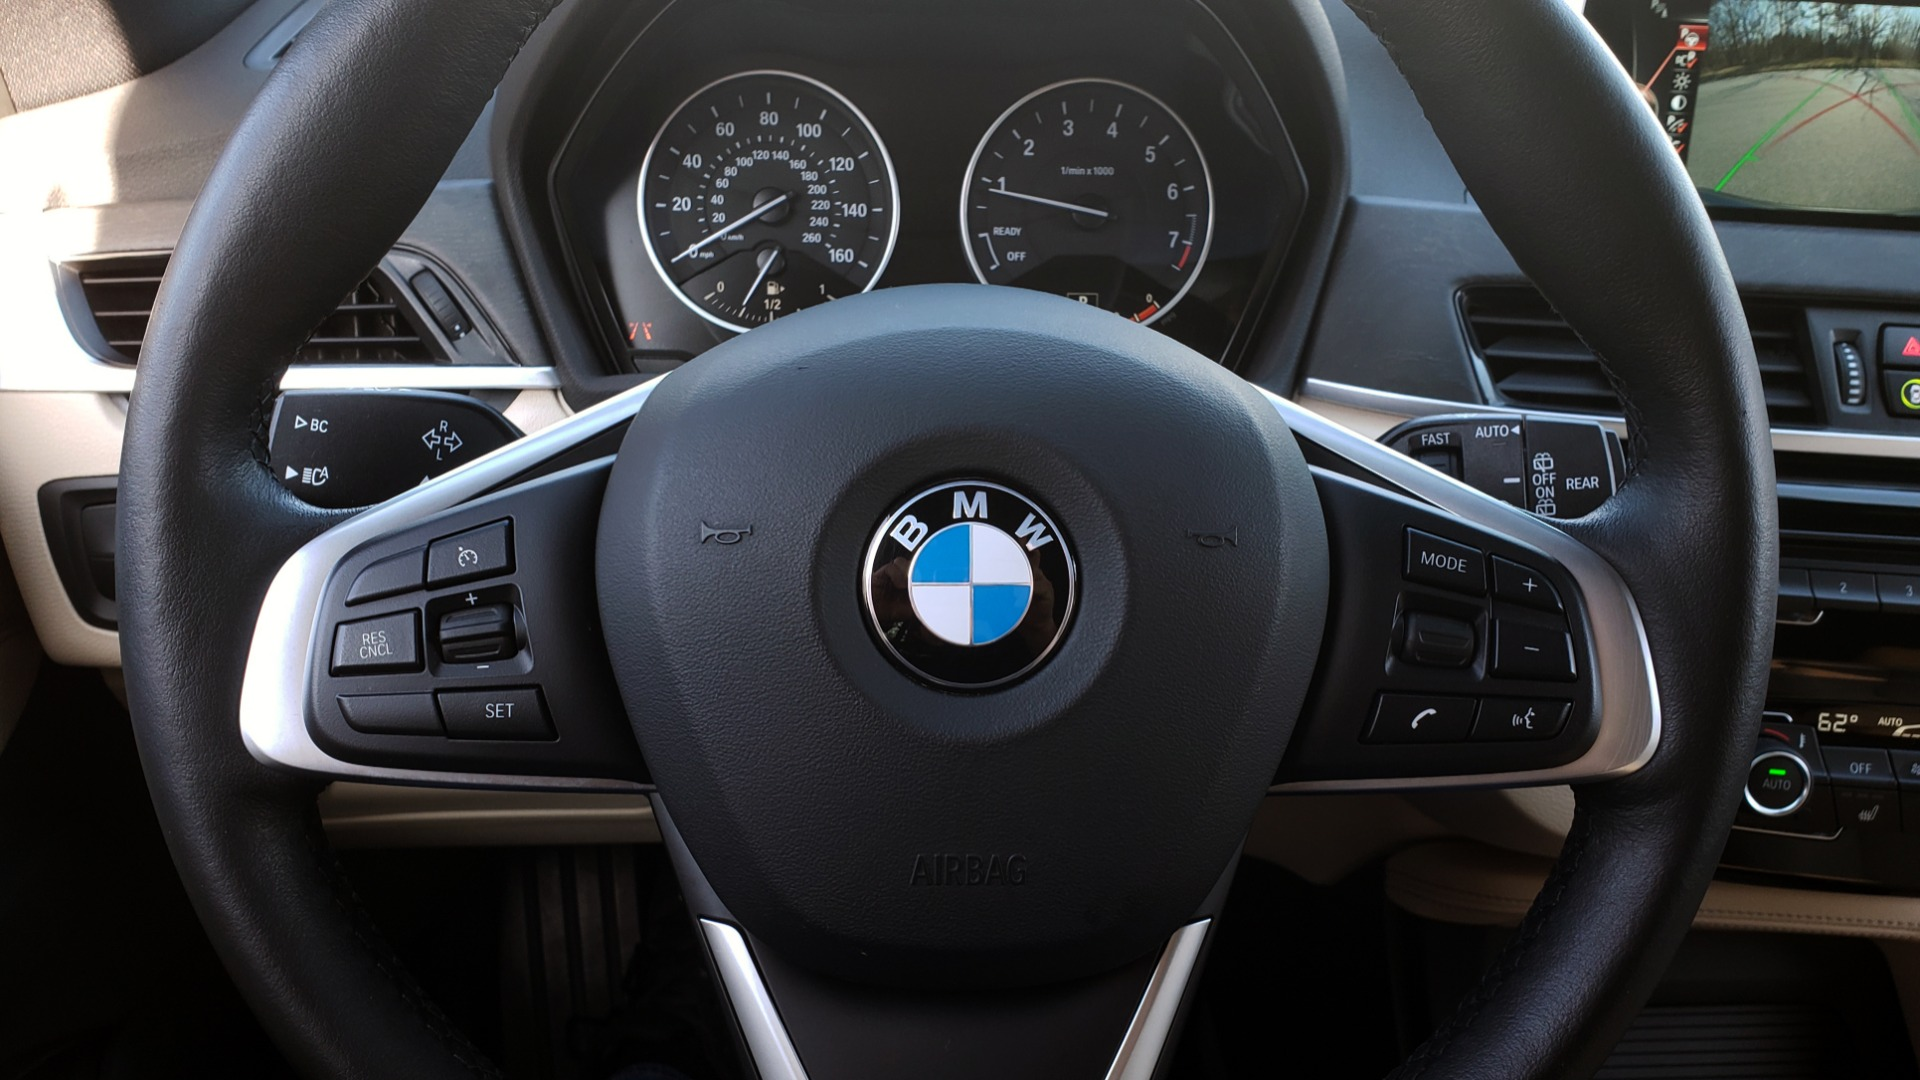 Used 2017 BMW X1 XDRIVE28I / PREM / TECH / DRVR ASST PLUS / COLD WTHR / REARVIEW for sale Sold at Formula Imports in Charlotte NC 28227 36